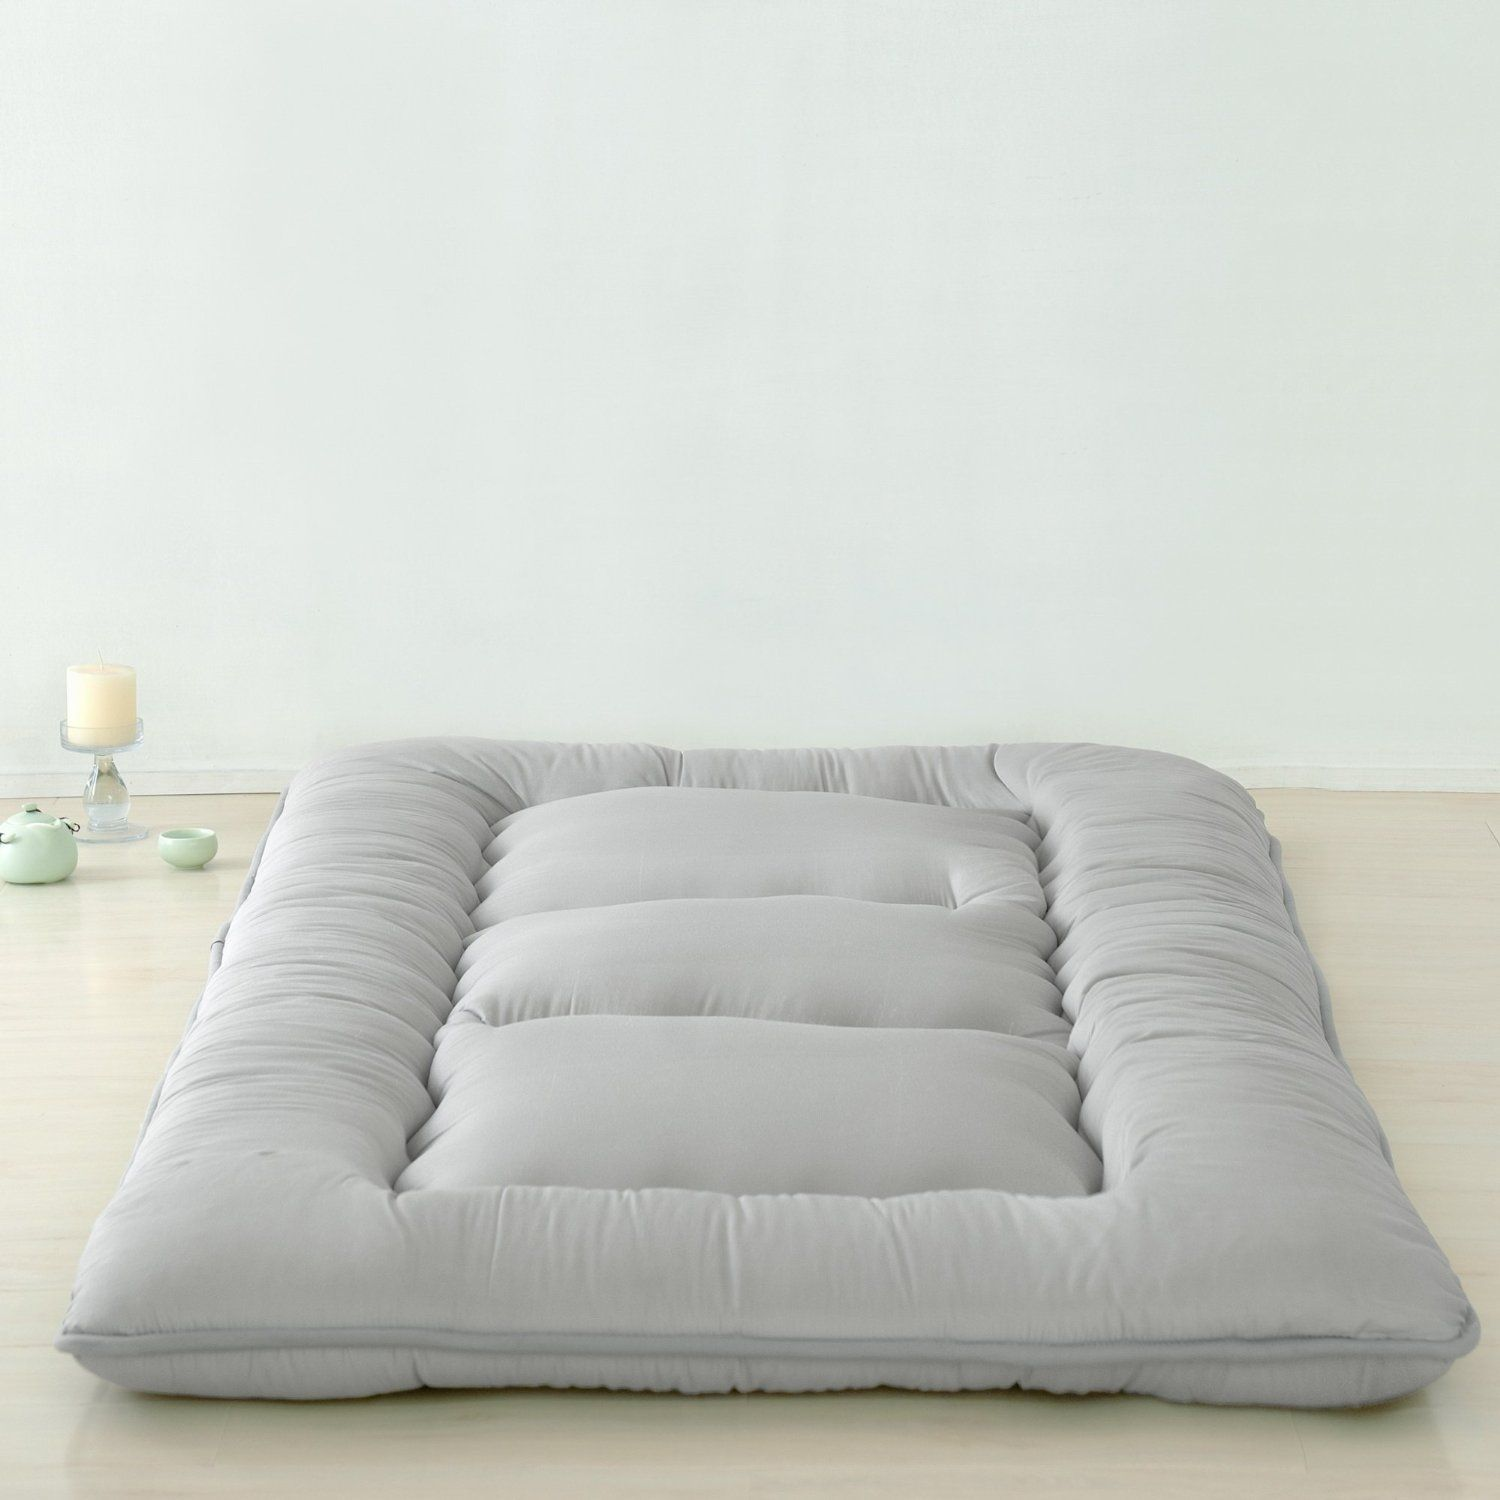 futons softness futon hub quality of its mattress mattresses mak with mardo near me